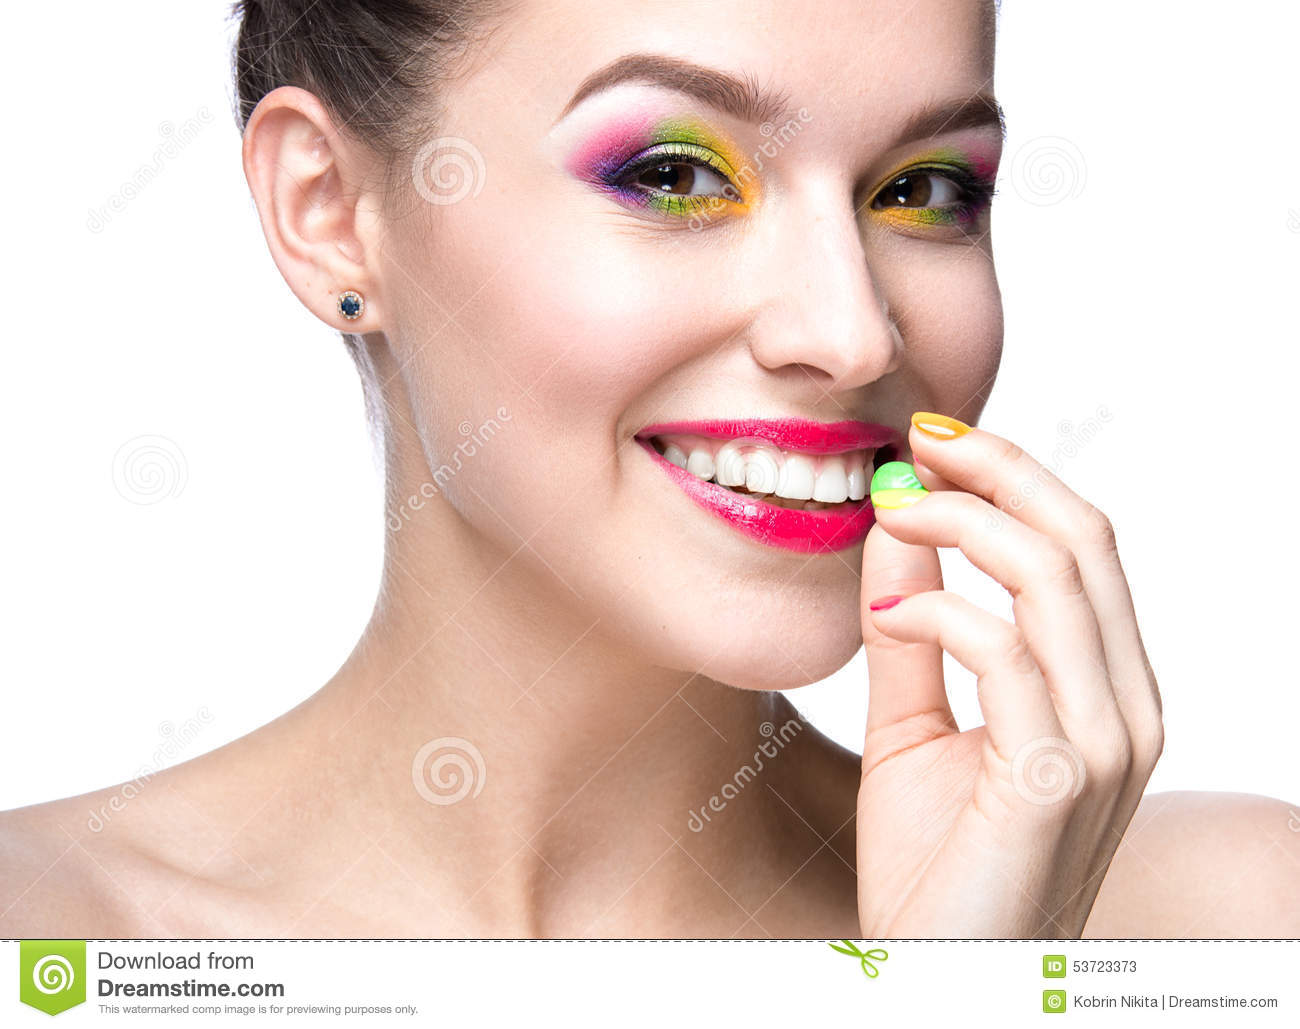 Beautiful Model Girl With Bright Colored Makeup And Nail Polish In The Summer Image. Beauty Face ...